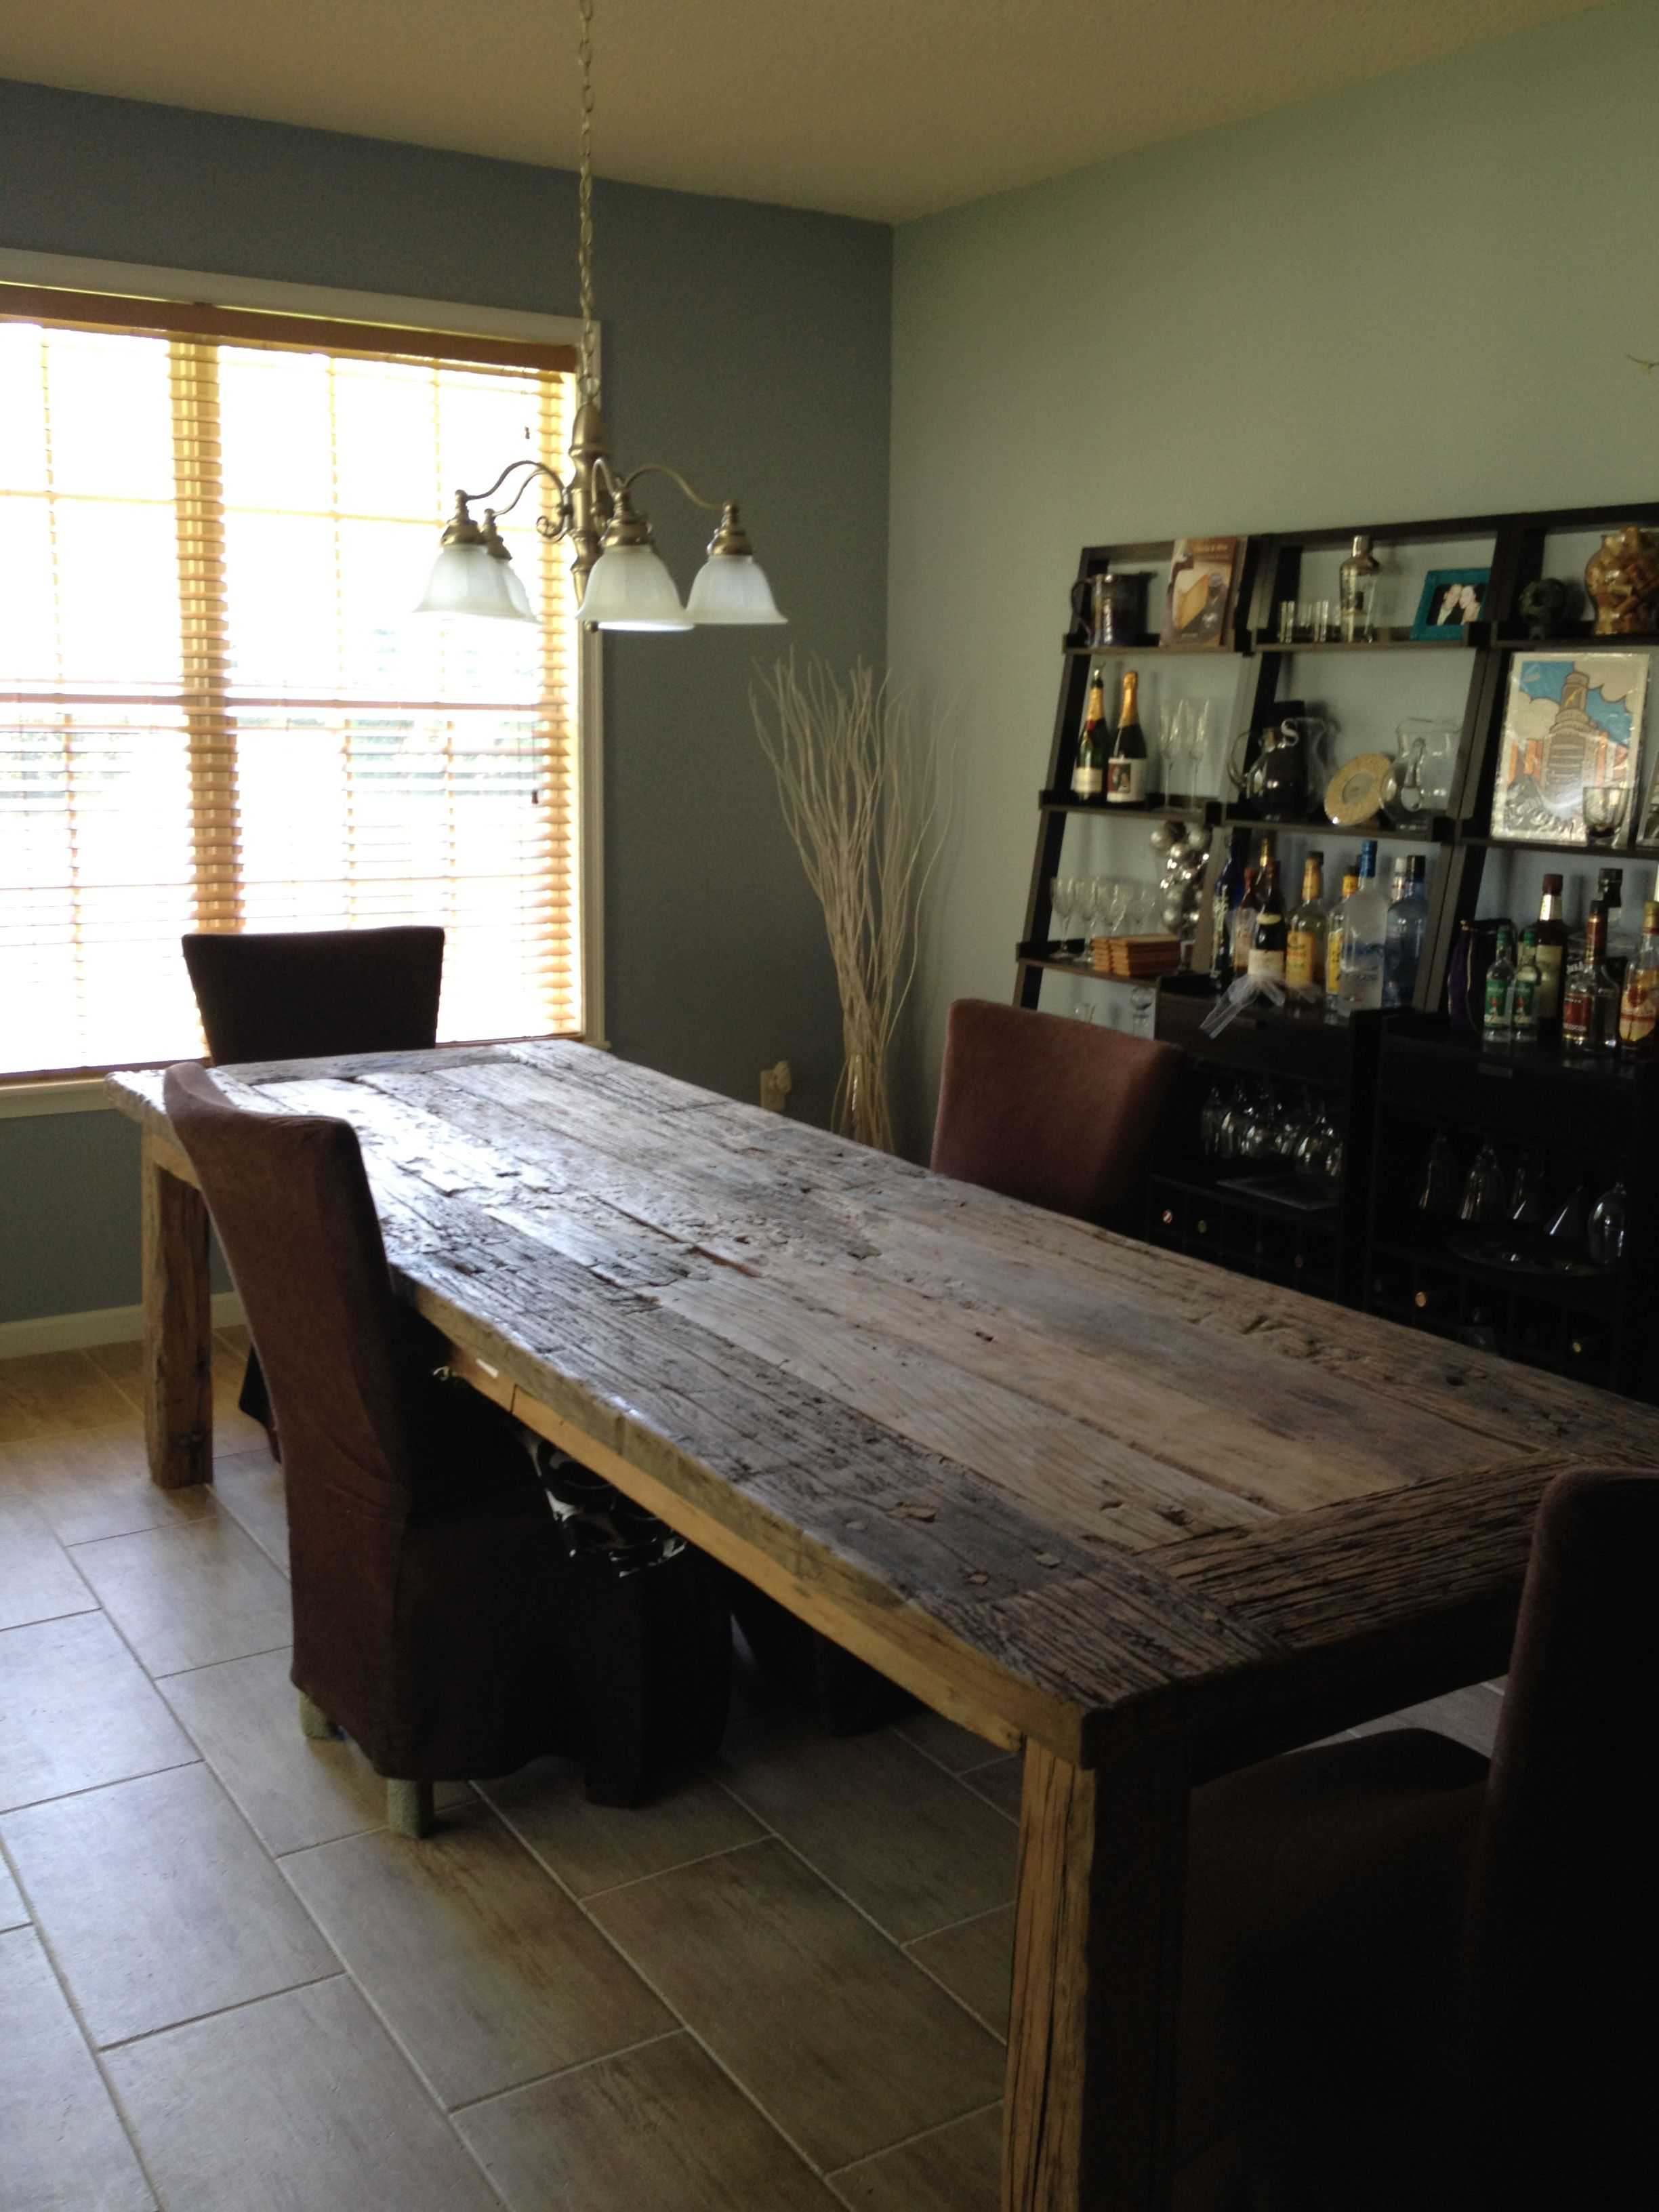 10 Ft Table Made From Railroad Ties From Bali Diy Table Legs Home Remodeling Home Furnishings